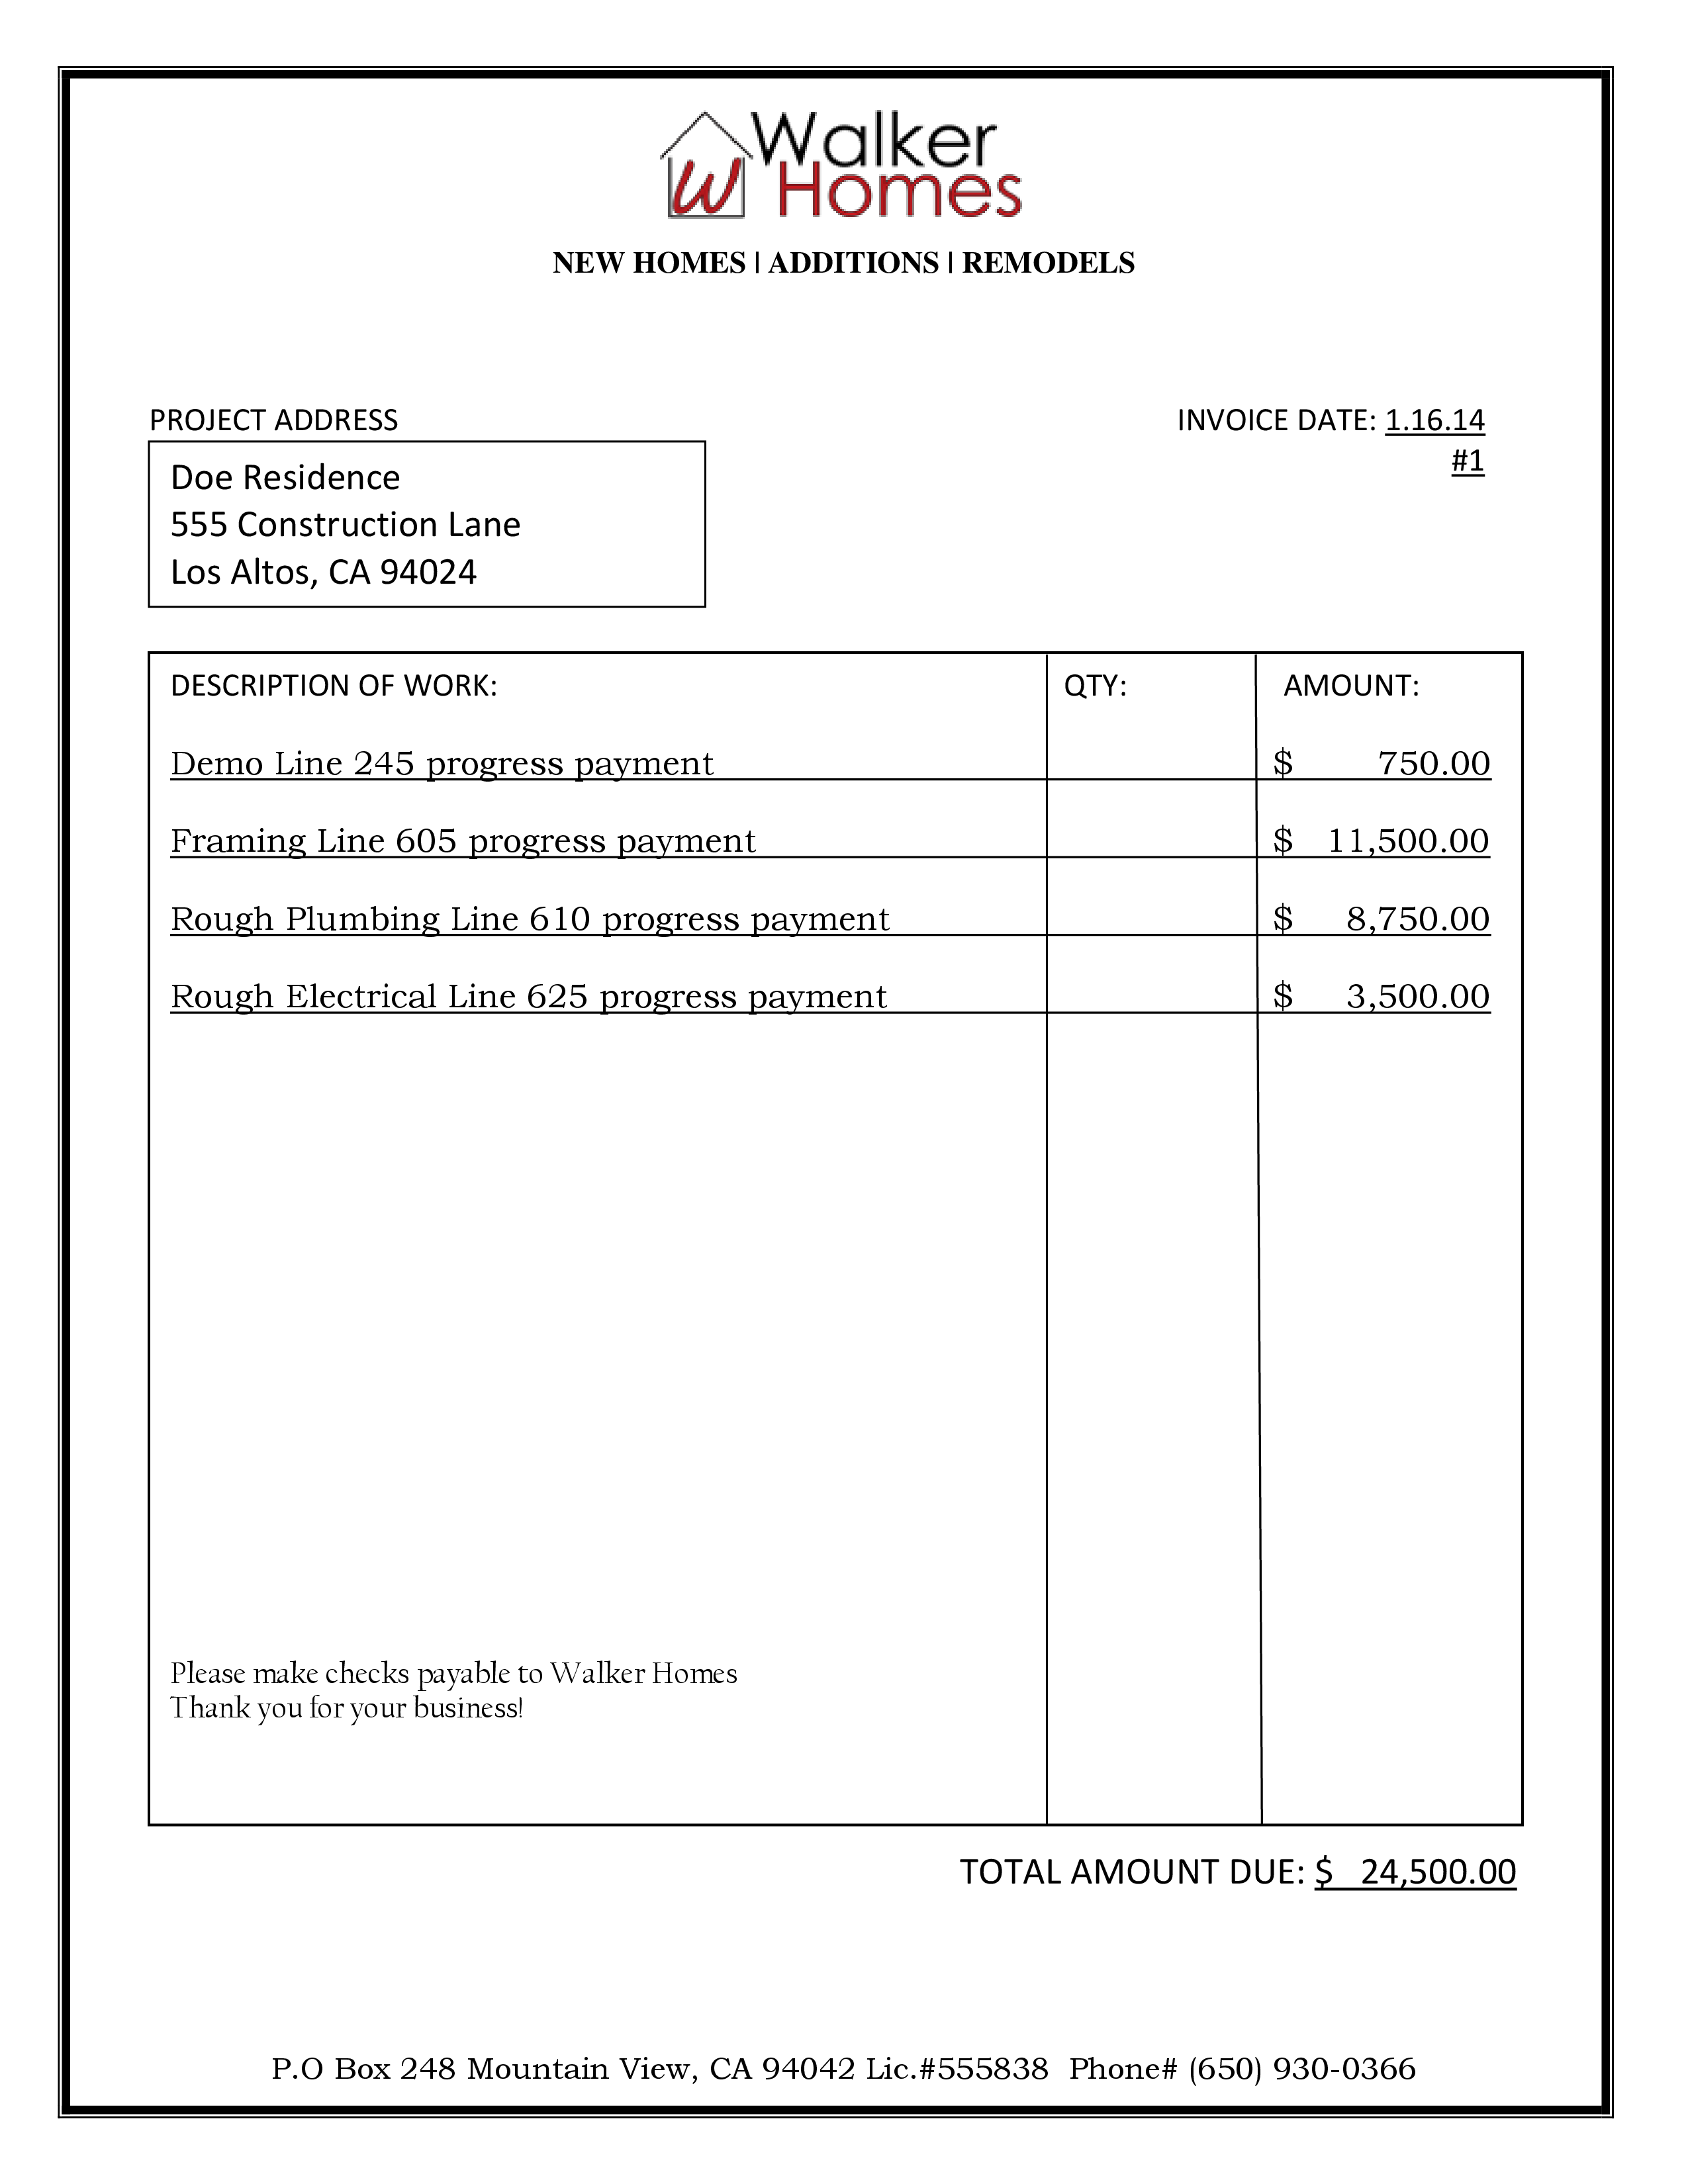 Patriotexpressus  Marvellous How To Write A Simple Invoice Sample Survey Questionnaire  With Outstanding Example Of A Invoice Packing Slip Template Graduate Student Cv   With Attractive Blank Commercial Invoice Pdf Also Makeup Artist Invoice Template In Addition Deposit Invoice Template And Ebay Invoice Example As Well As On The Invoice Additionally Zoho Invoice App From Sklepco With Patriotexpressus  Outstanding How To Write A Simple Invoice Sample Survey Questionnaire  With Attractive Example Of A Invoice Packing Slip Template Graduate Student Cv   And Marvellous Blank Commercial Invoice Pdf Also Makeup Artist Invoice Template In Addition Deposit Invoice Template From Sklepco